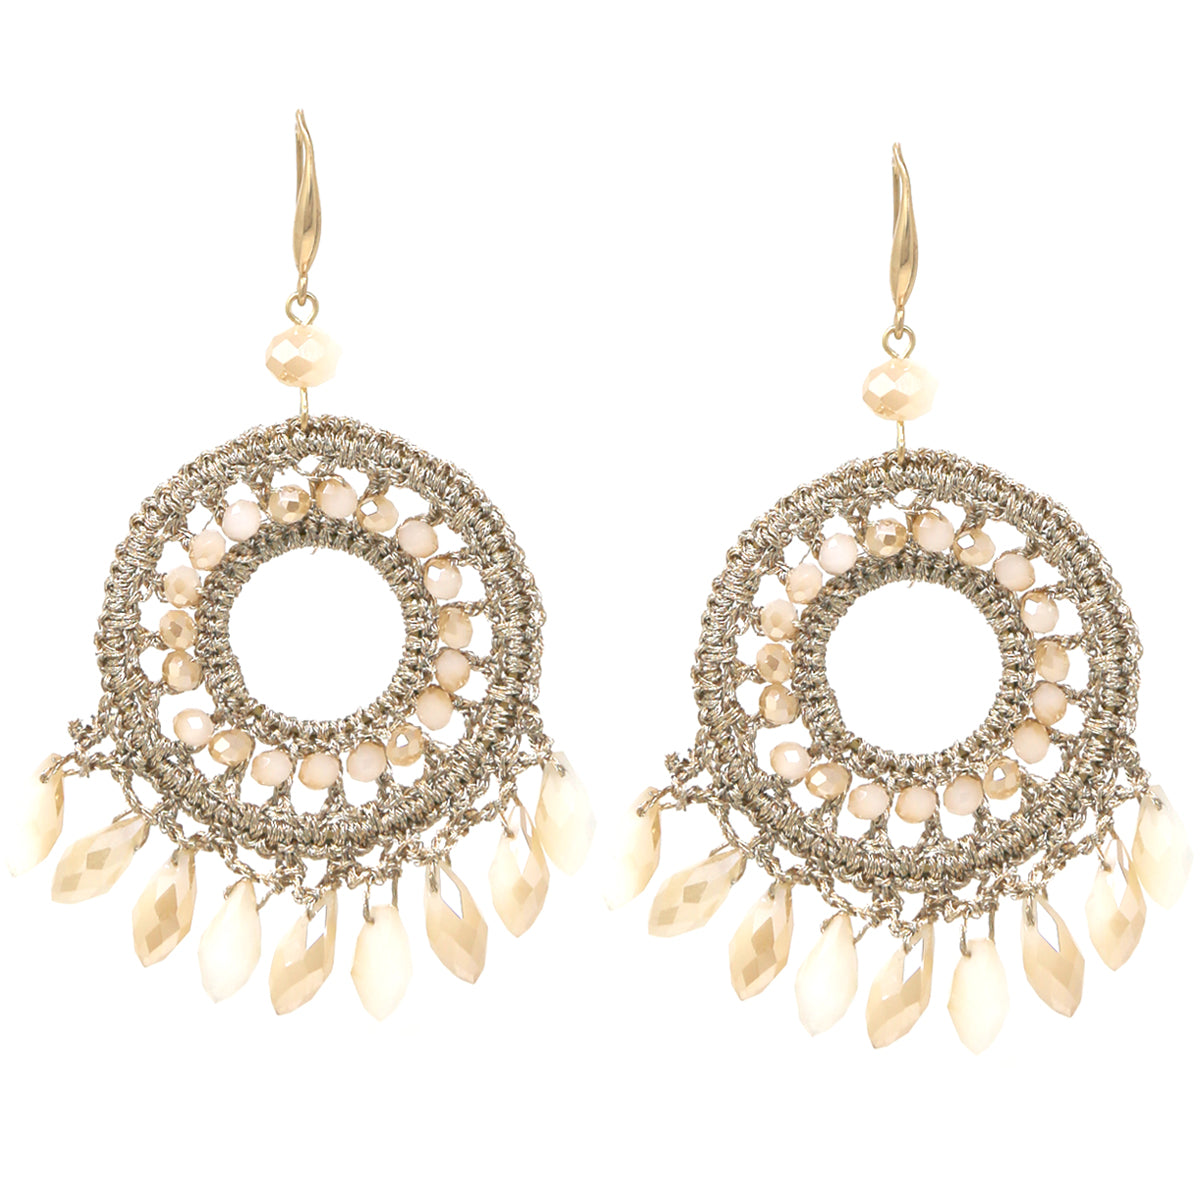 Teardrop Glass Bead Fringe Crochet Disc Drop Earrings